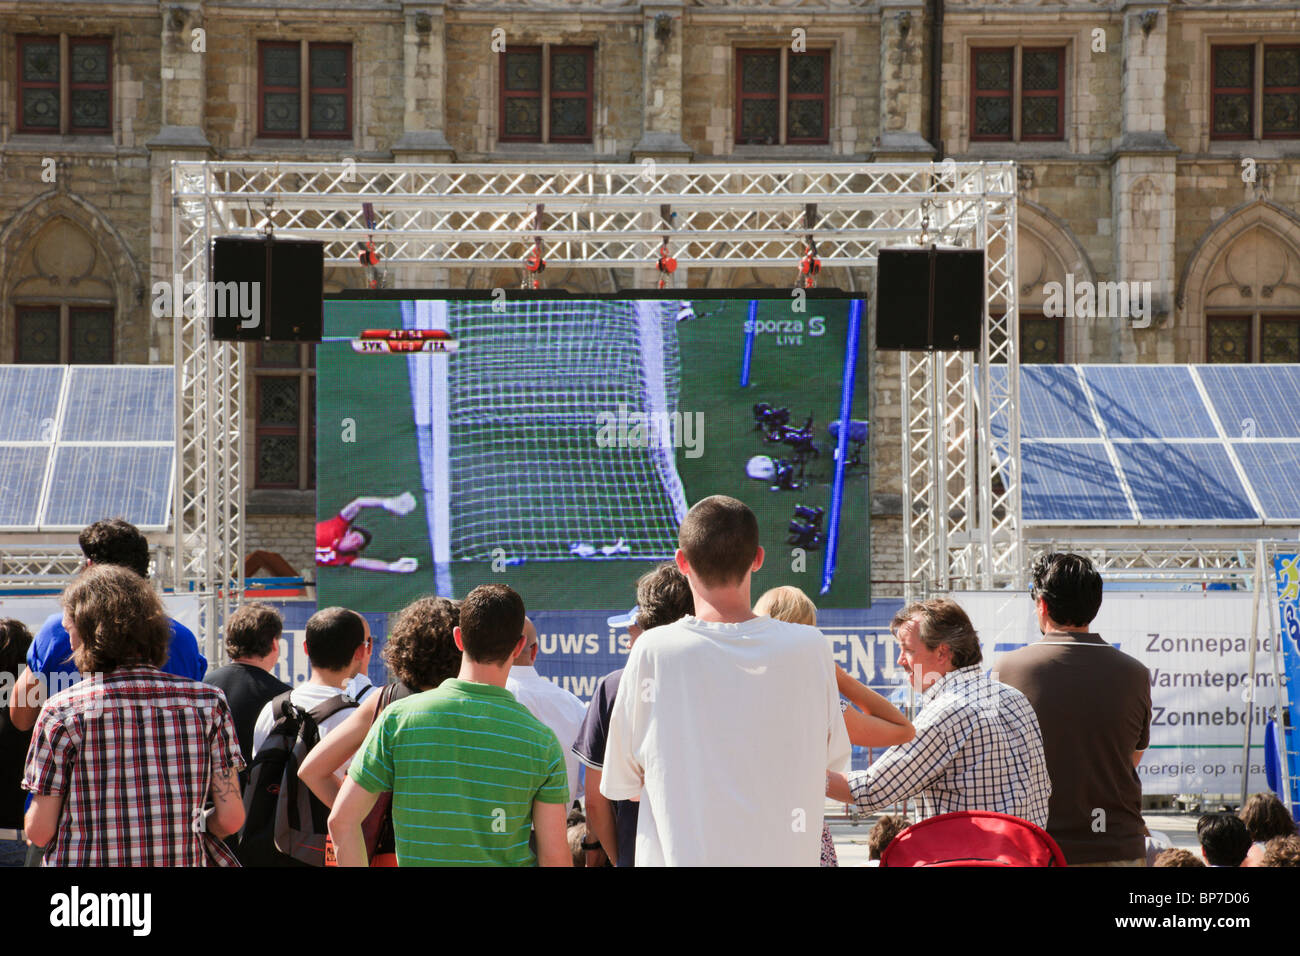 Ghent, East Flanders, Belgium. People outside watching a football match on solar powered big public television screen - Stock Image